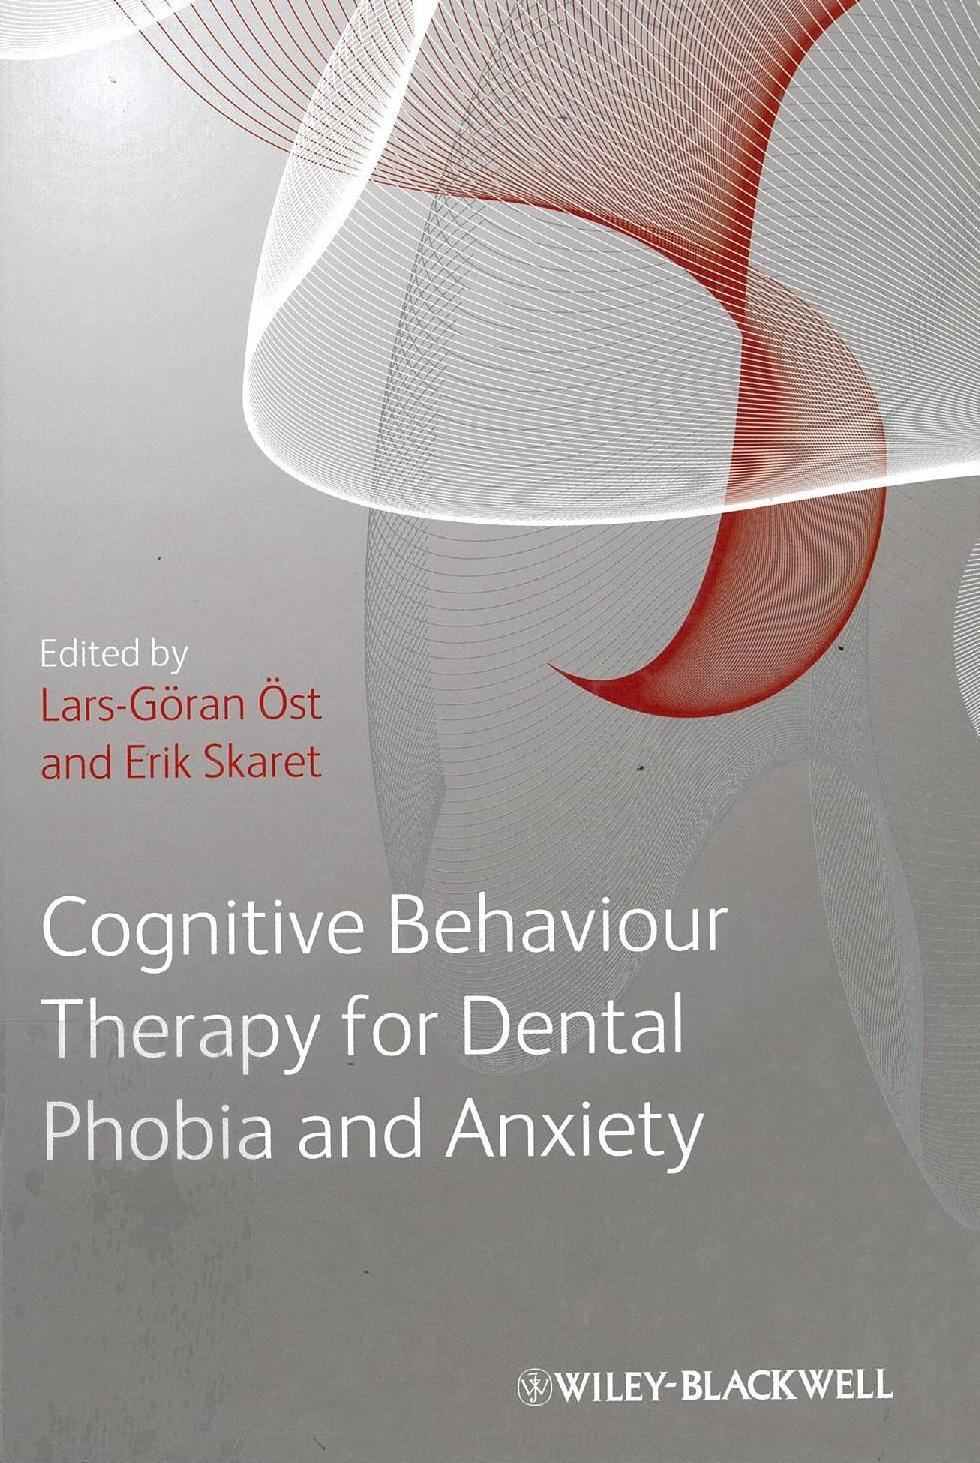 Cognitive Behavior Therapy for Dental